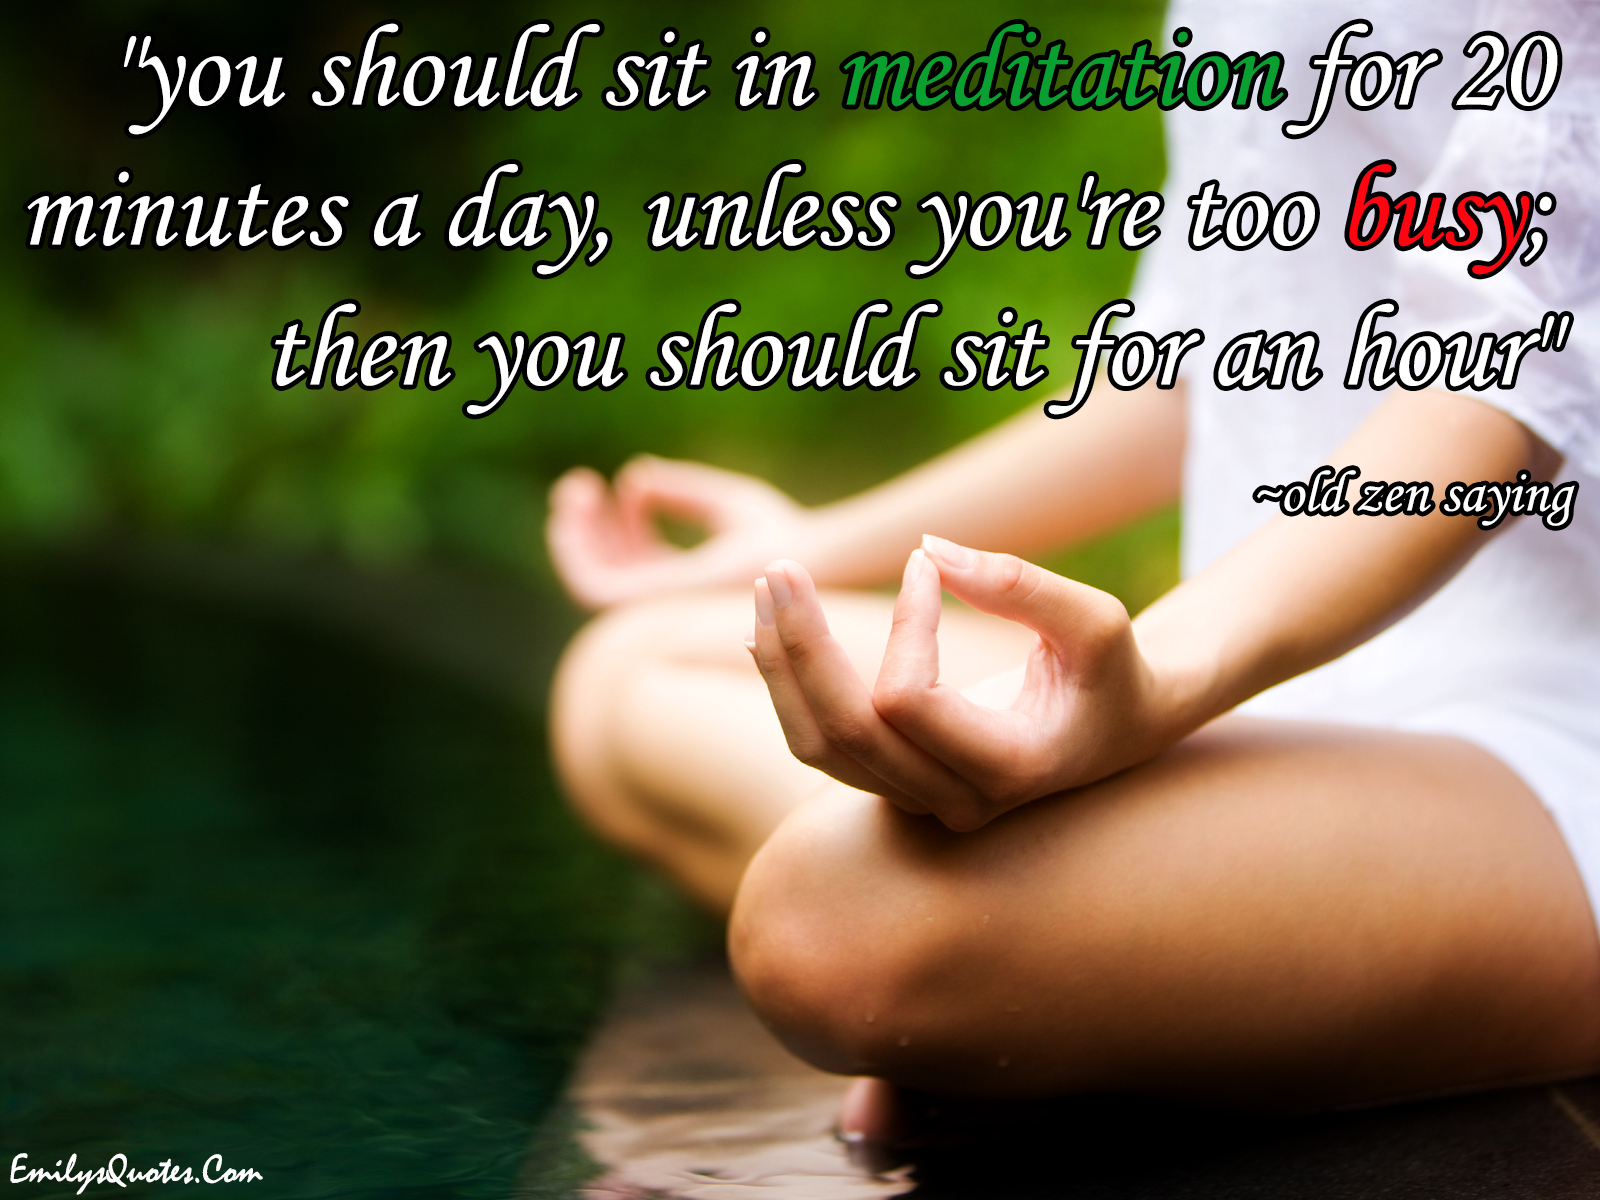 You should sit in meditation for 20 minutes a day, unless ...